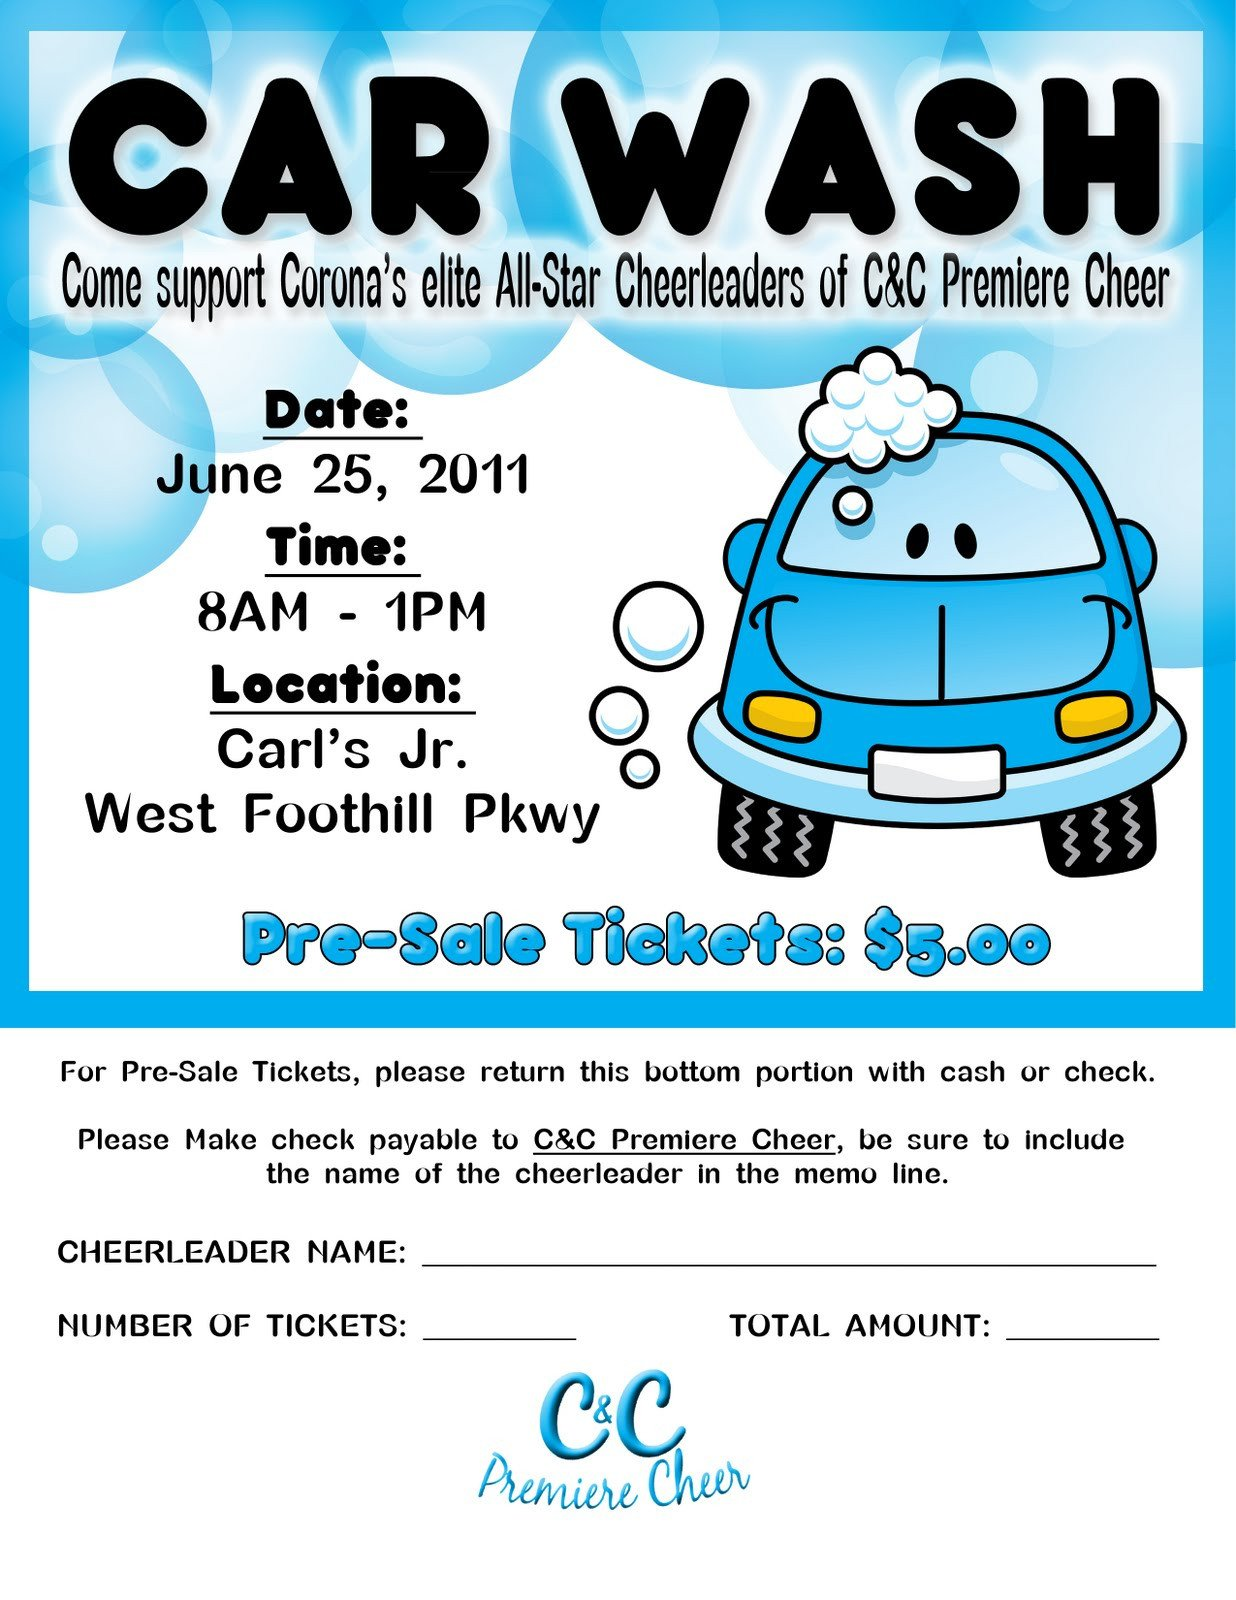 Car Wash Ticket Template Microsoft Word Graphy and Graphic Designby Khylia